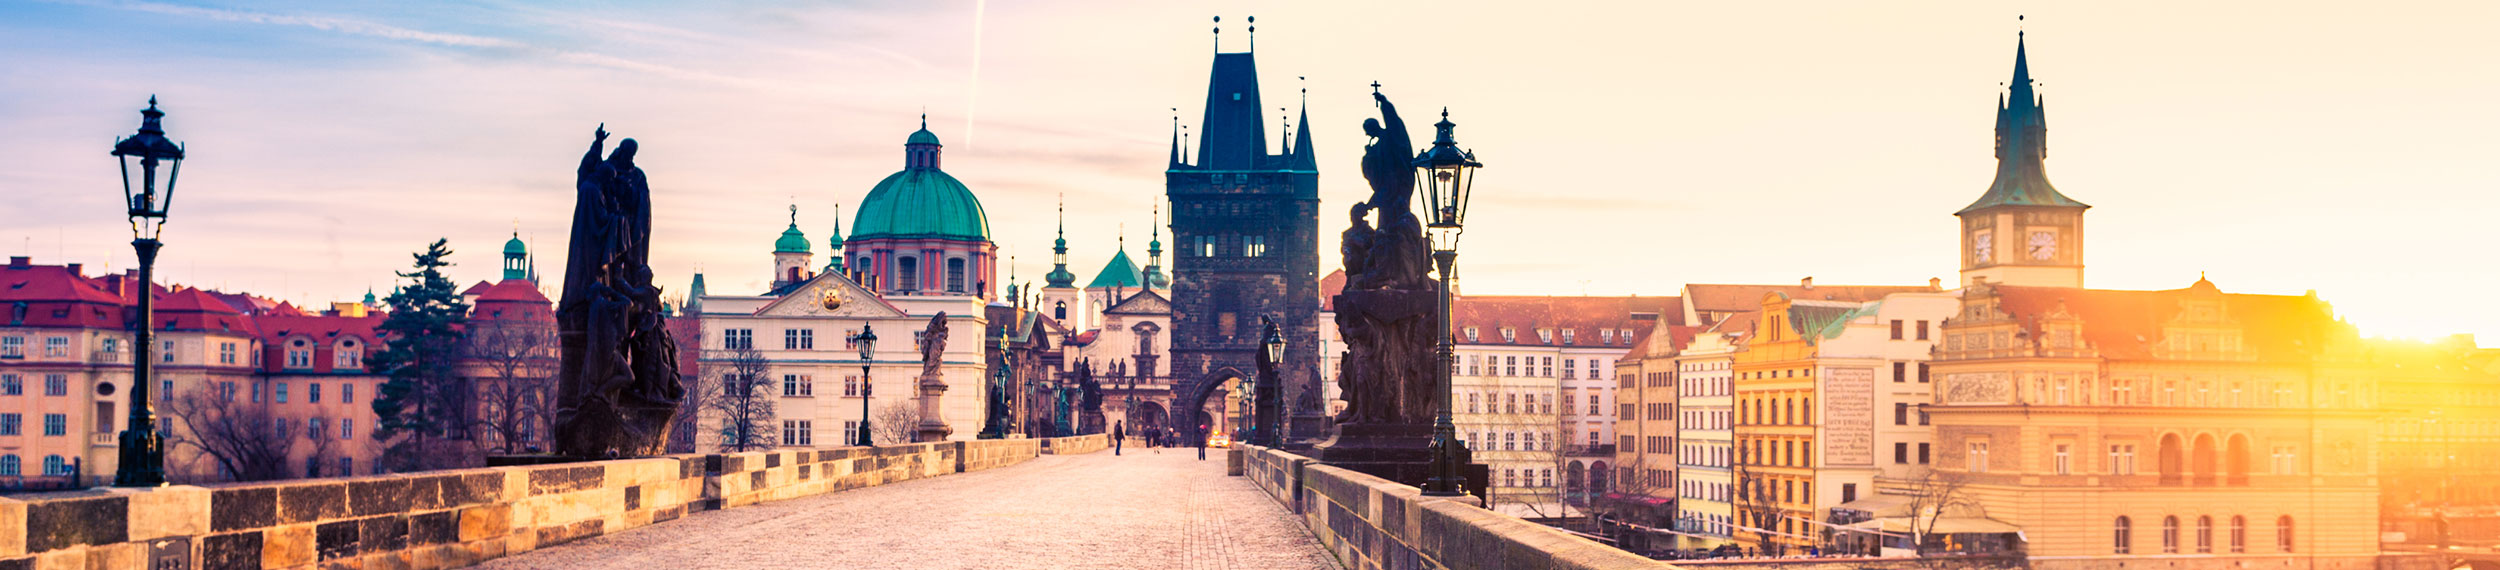 View of Charles Bridge and city skyline in Prague, Czech Republic.